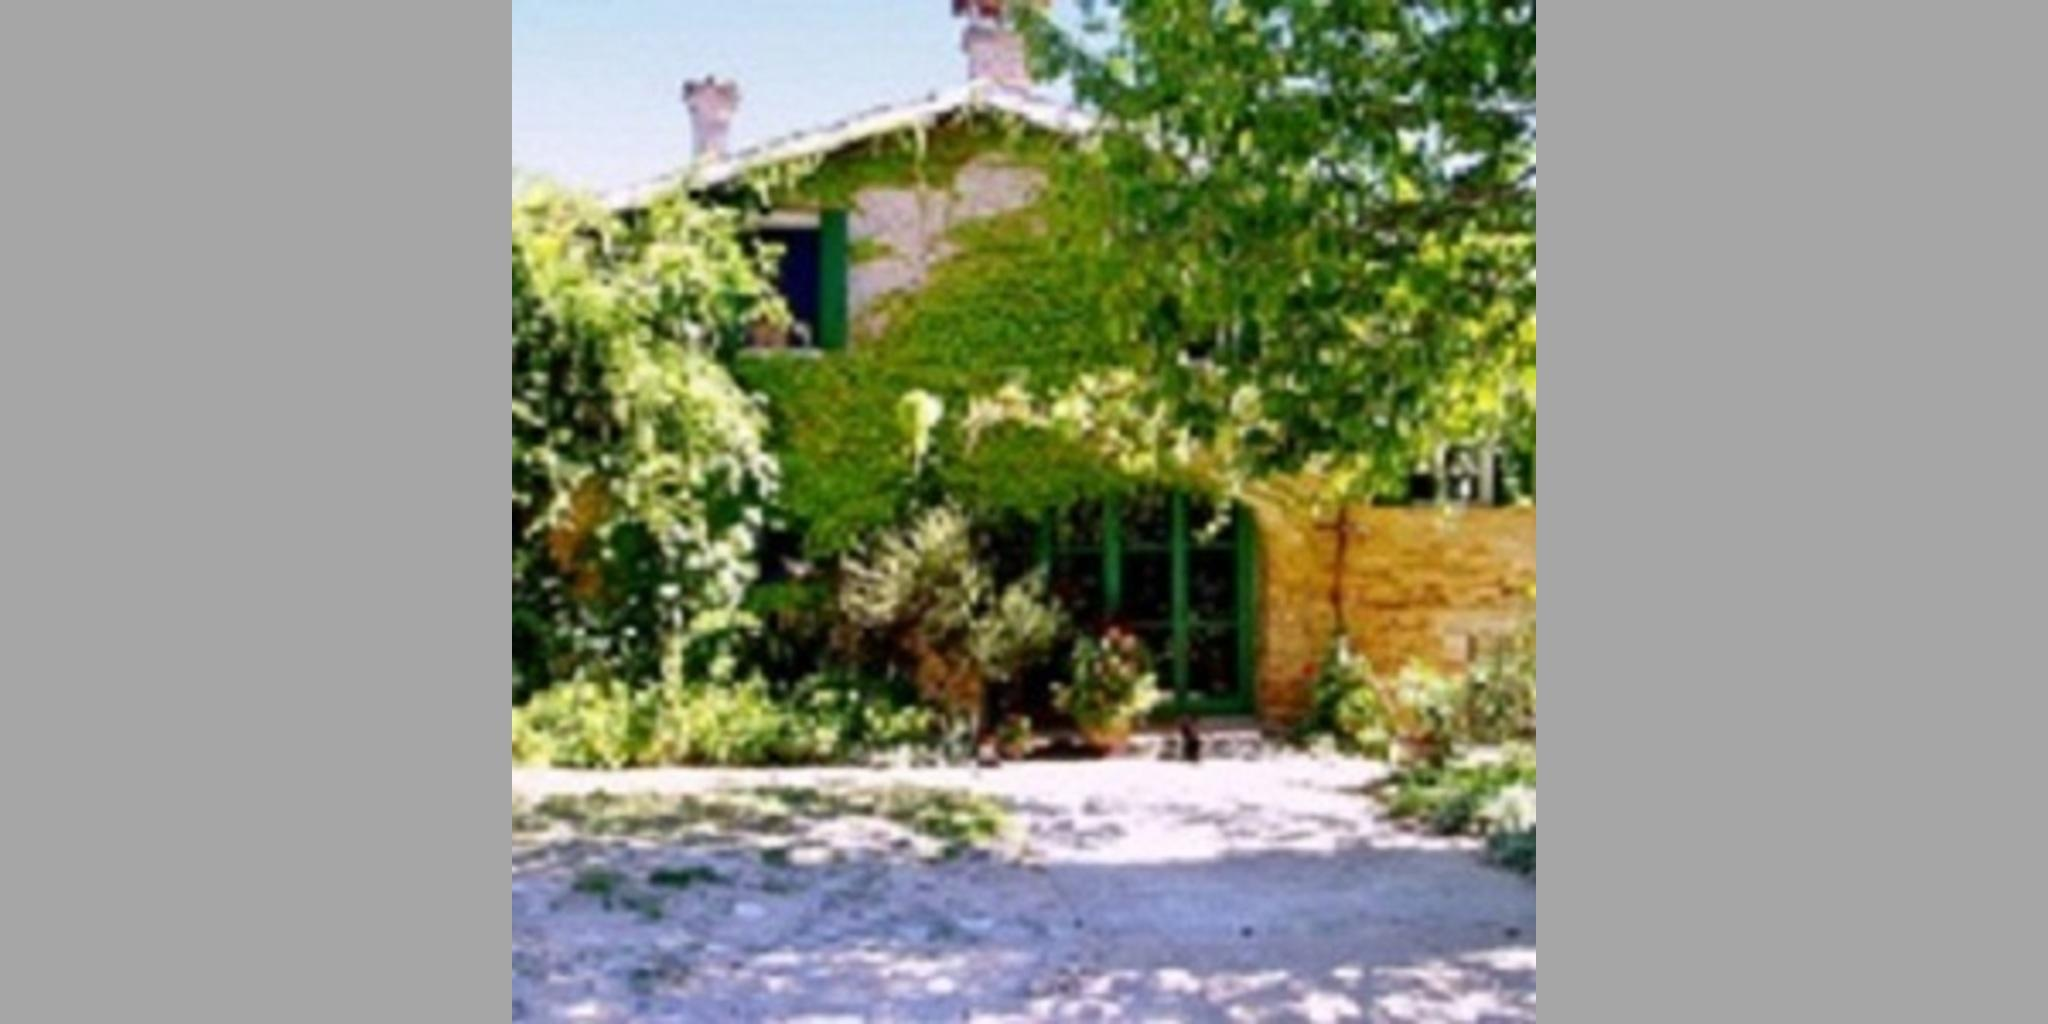 Bed & Breakfast Petriano - Montefeltro